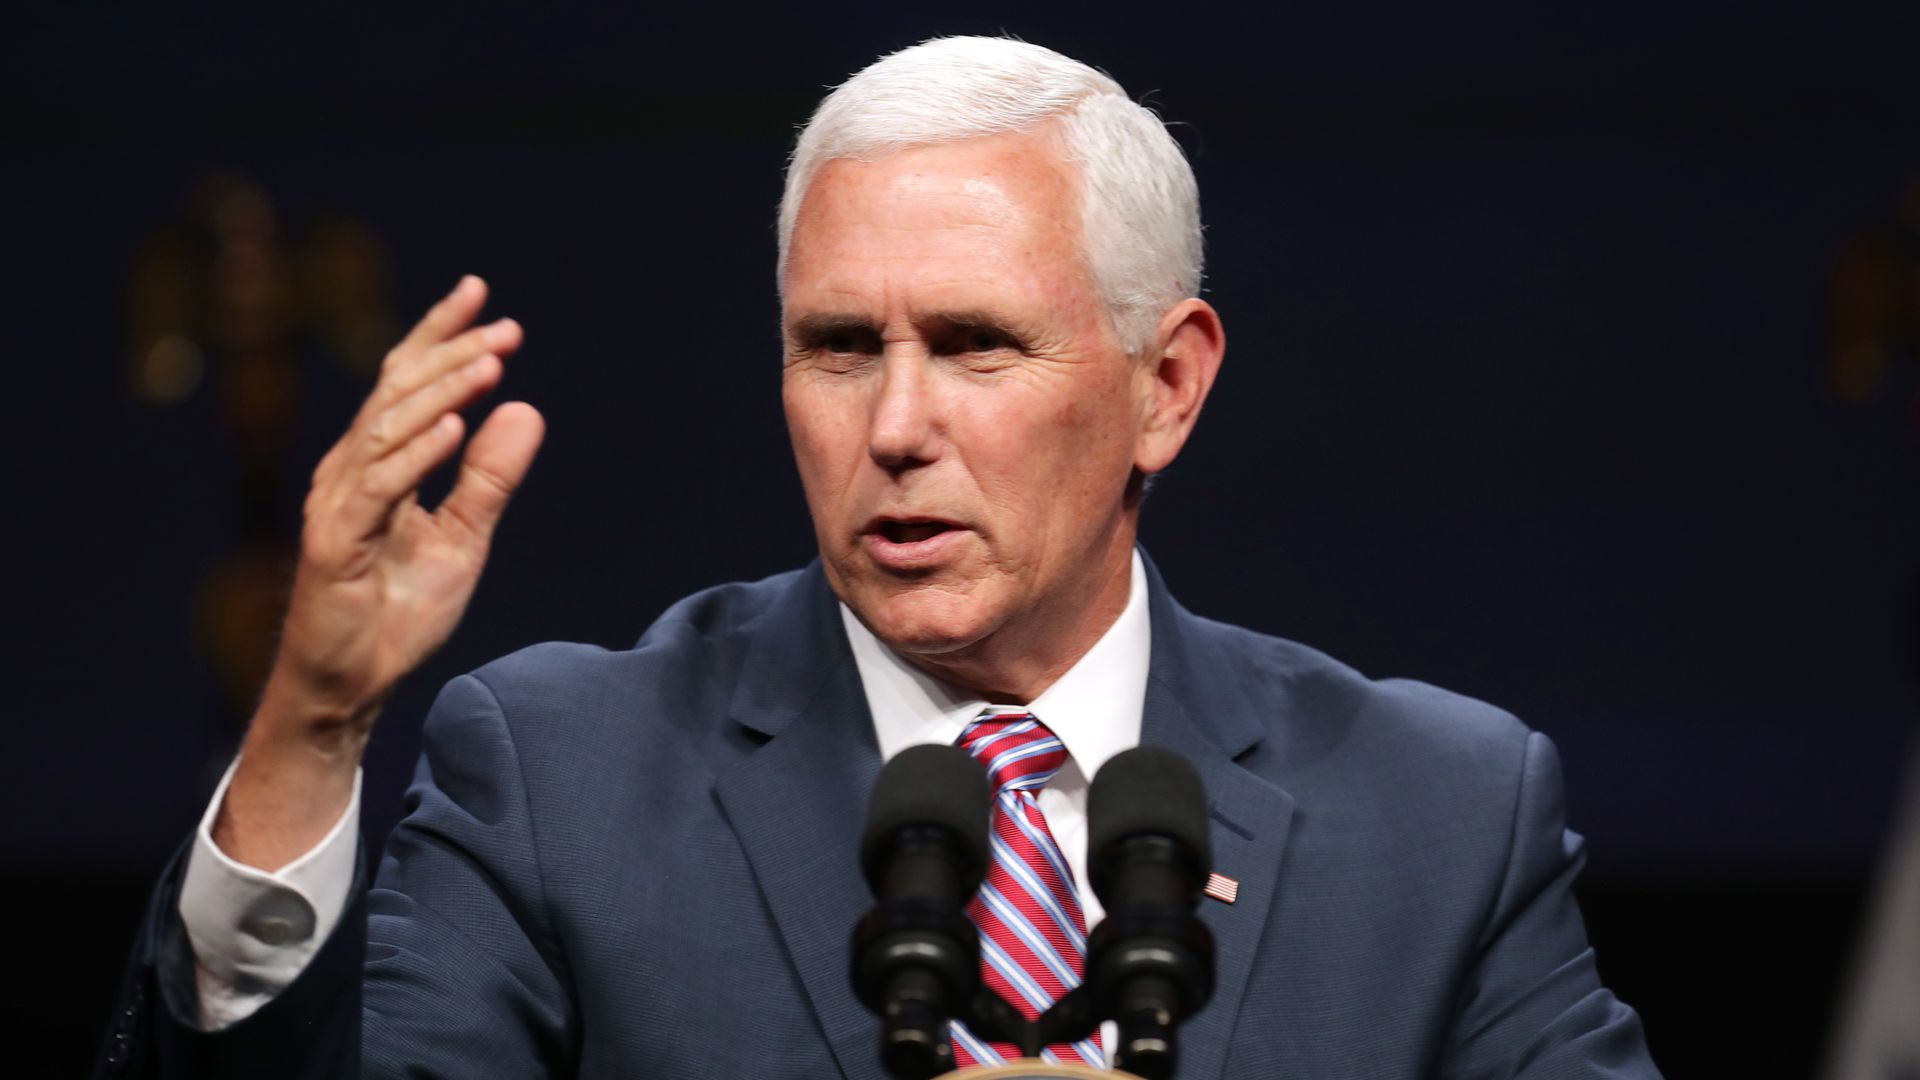 Vice President Mike Pence delivers a keynote address during Access Intelligence's Satellite 2019 Conference and Exhibition at the Walter E. Washington Convention Center in Washington, DC.